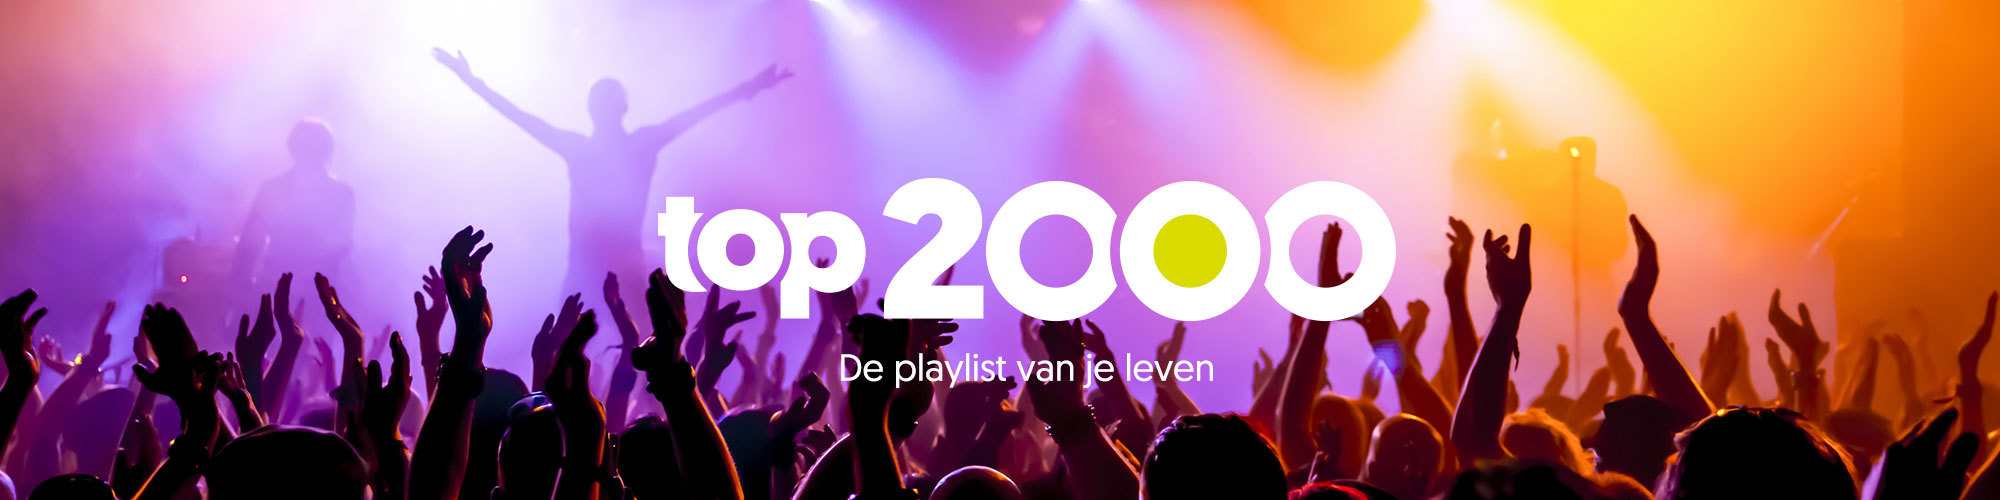 Joe carrousel top2000 finaal playlistvanjeleven 5